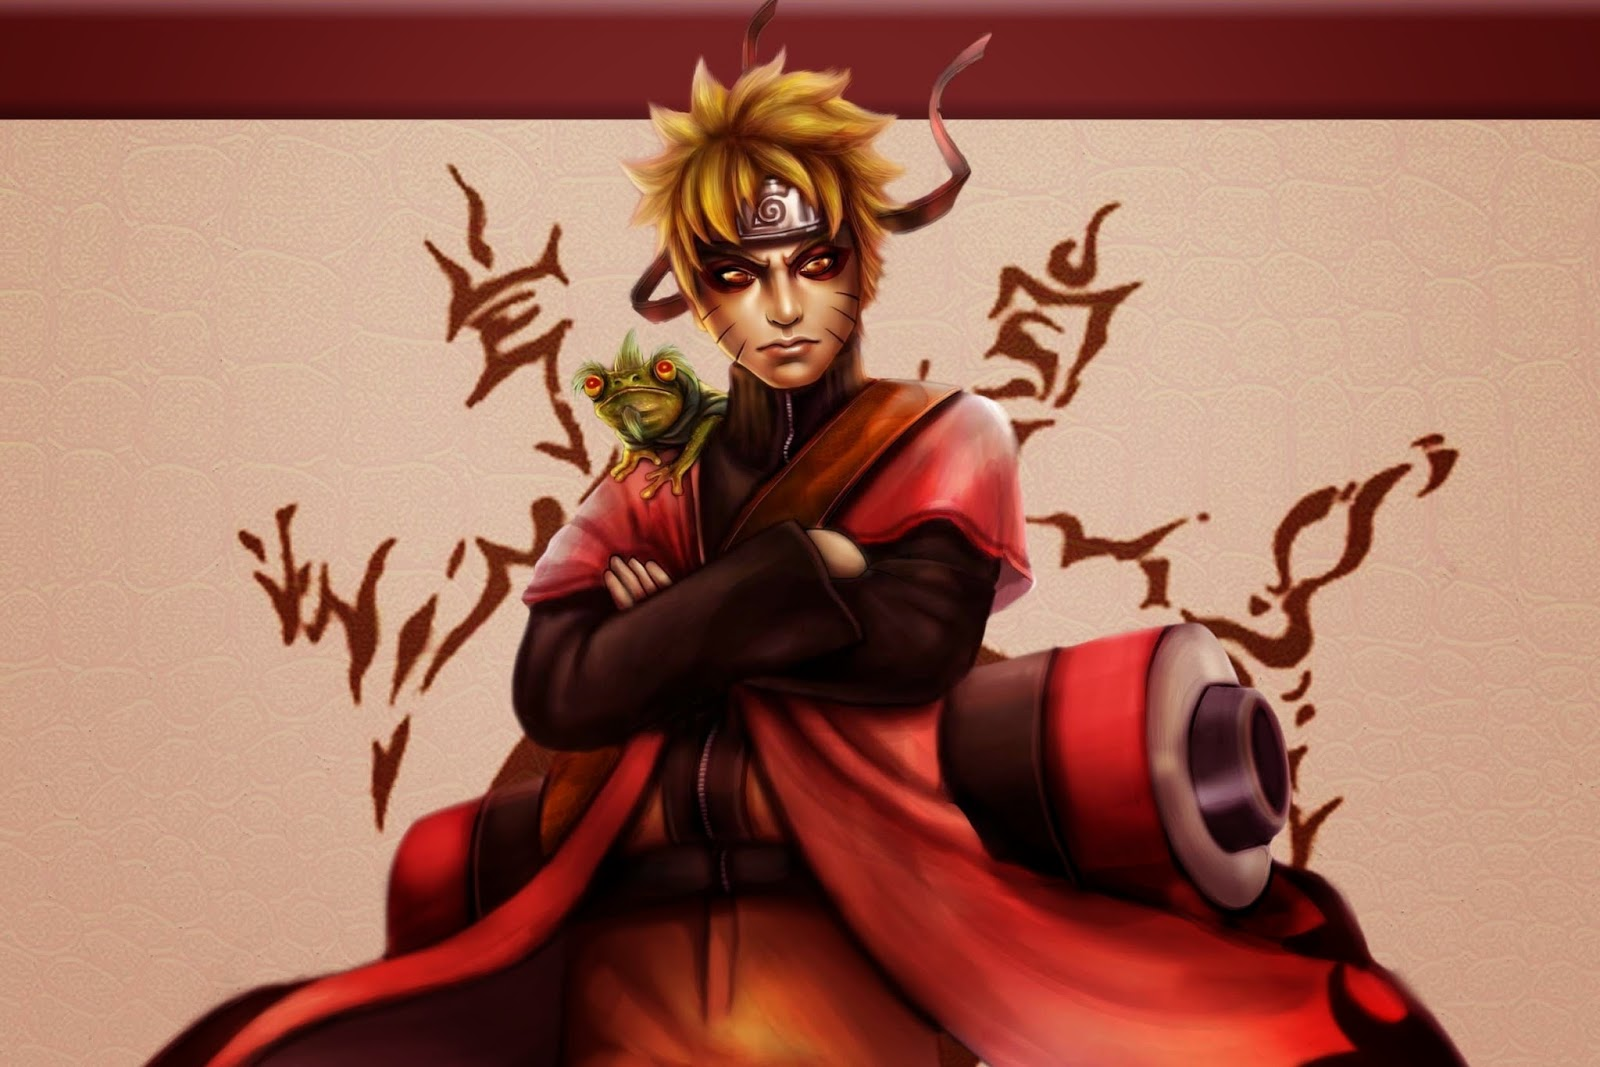 Collection Image Wallpaper Animasi Naruto Keren 3d